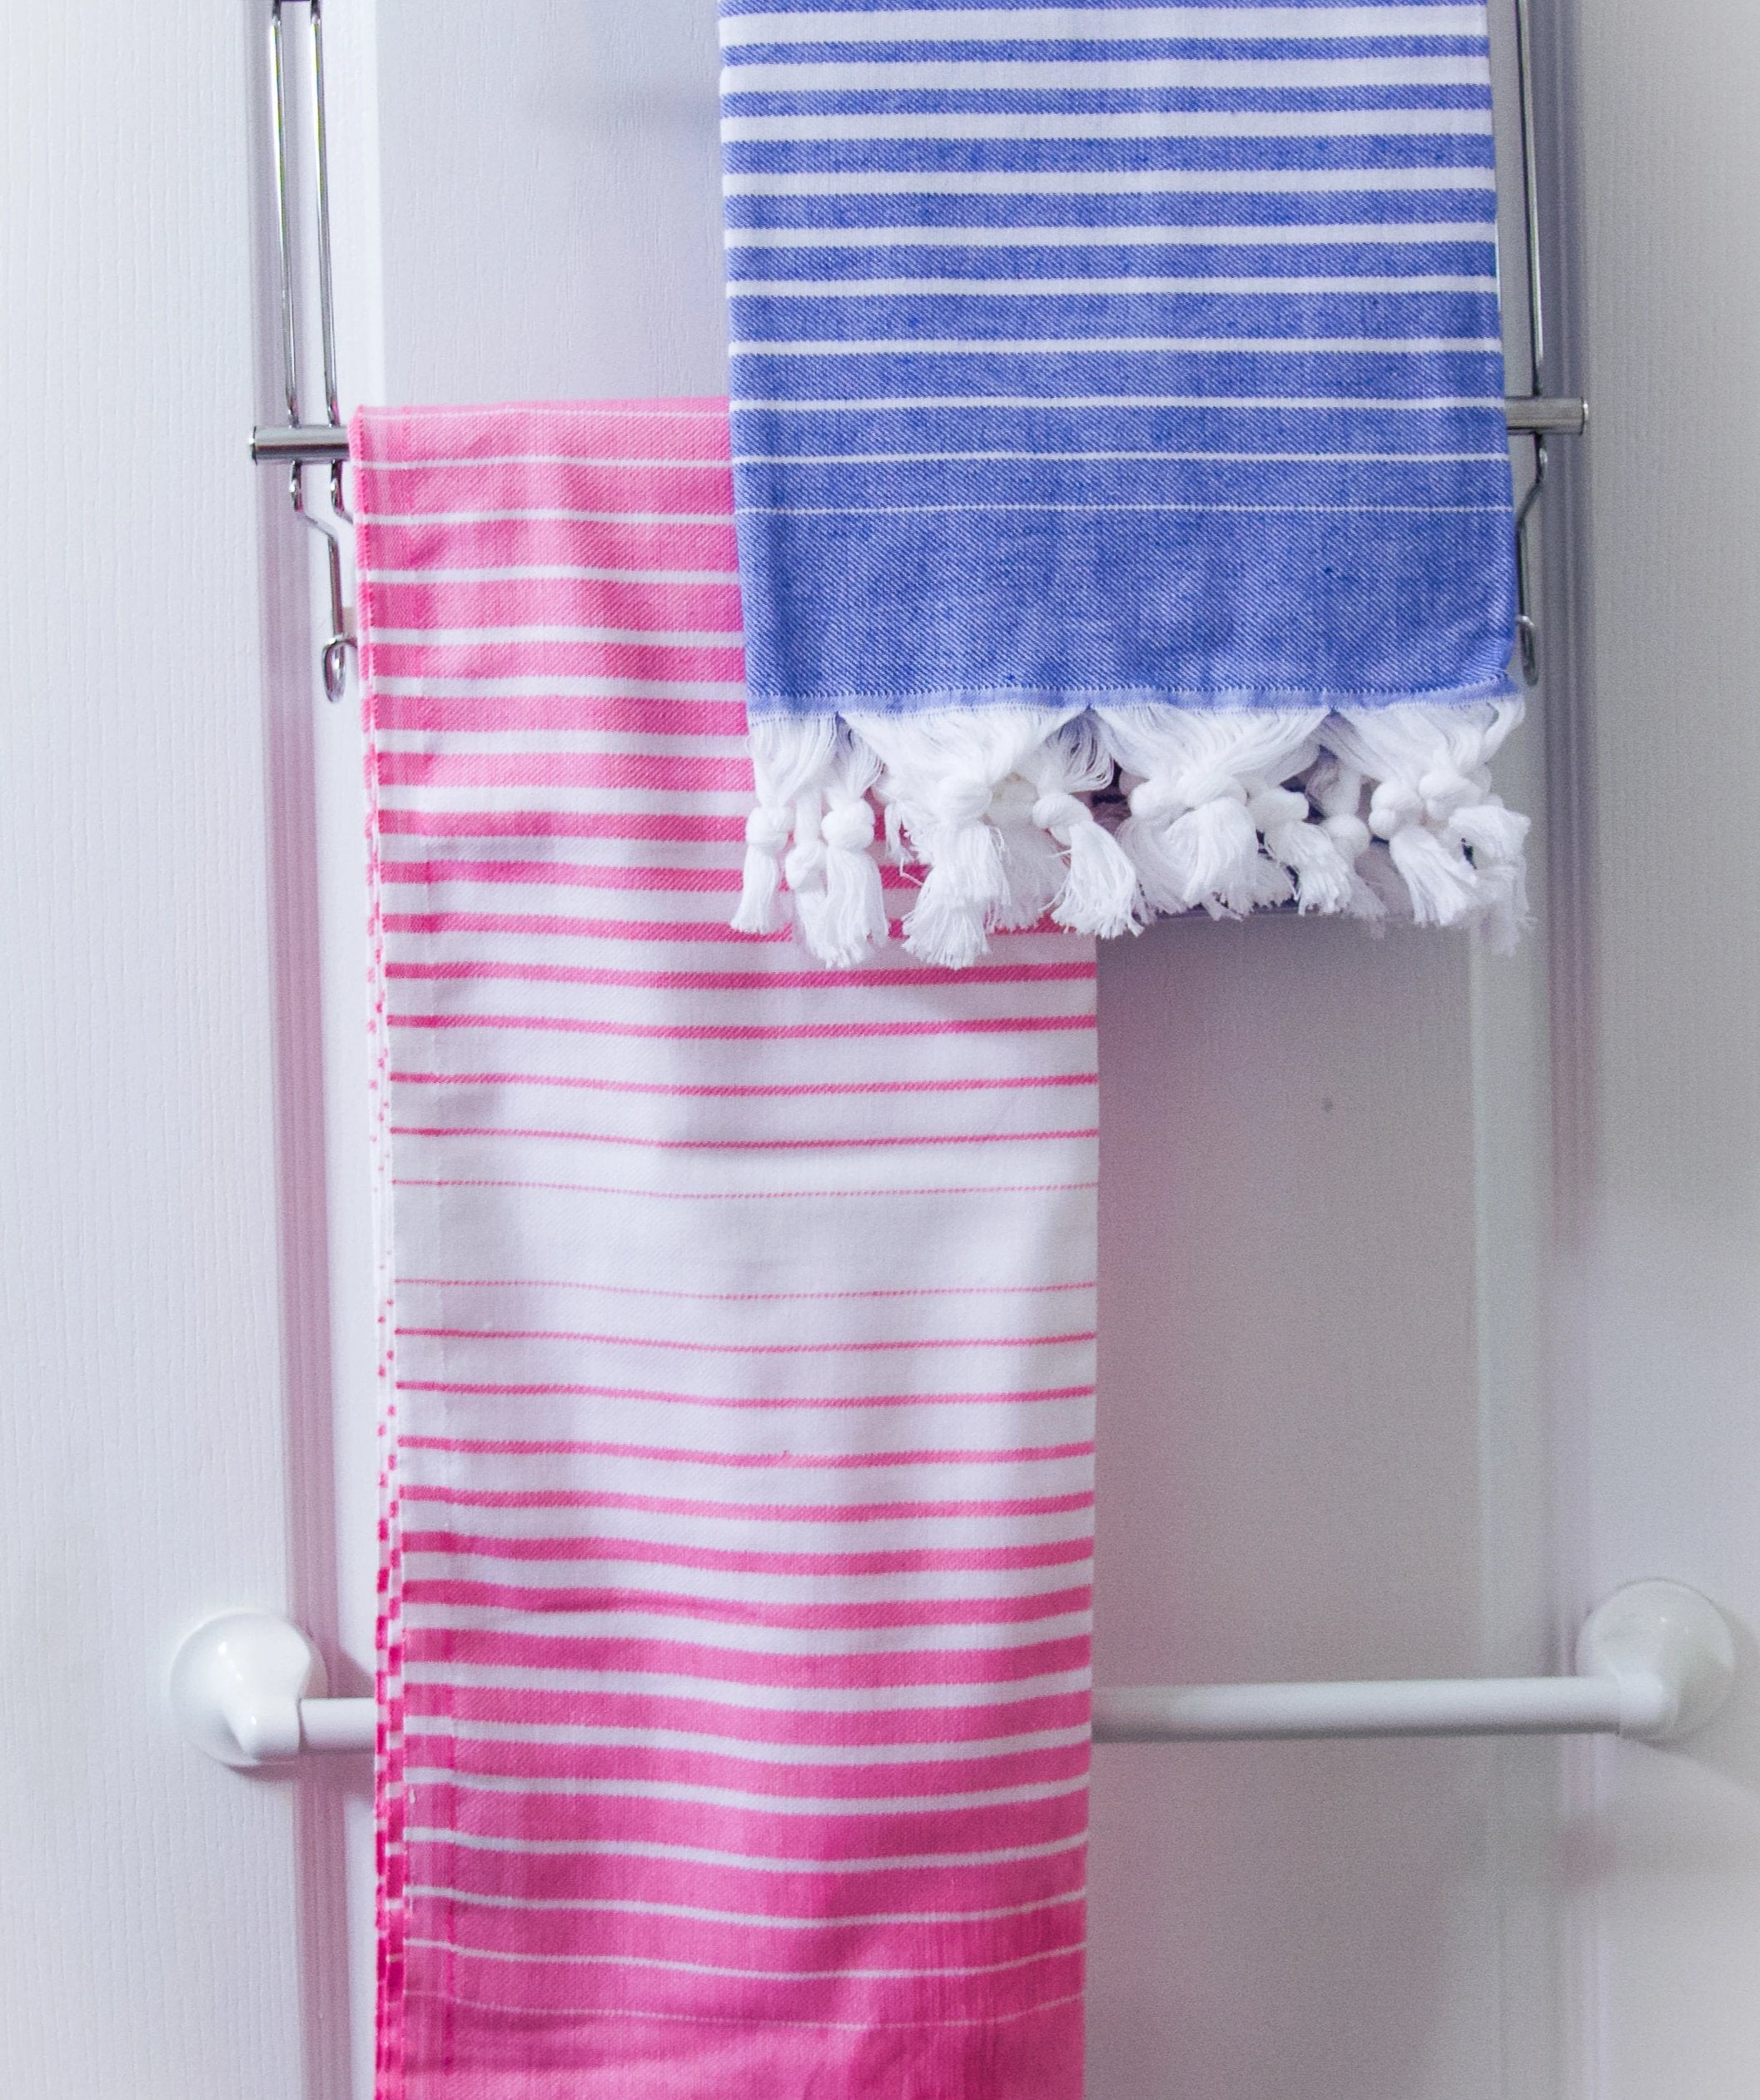 koton kulture toronto turkish towel rainbow fade peshtemal with gradient light colour and tassels comes in pink red orange turquoise lavender marine blue